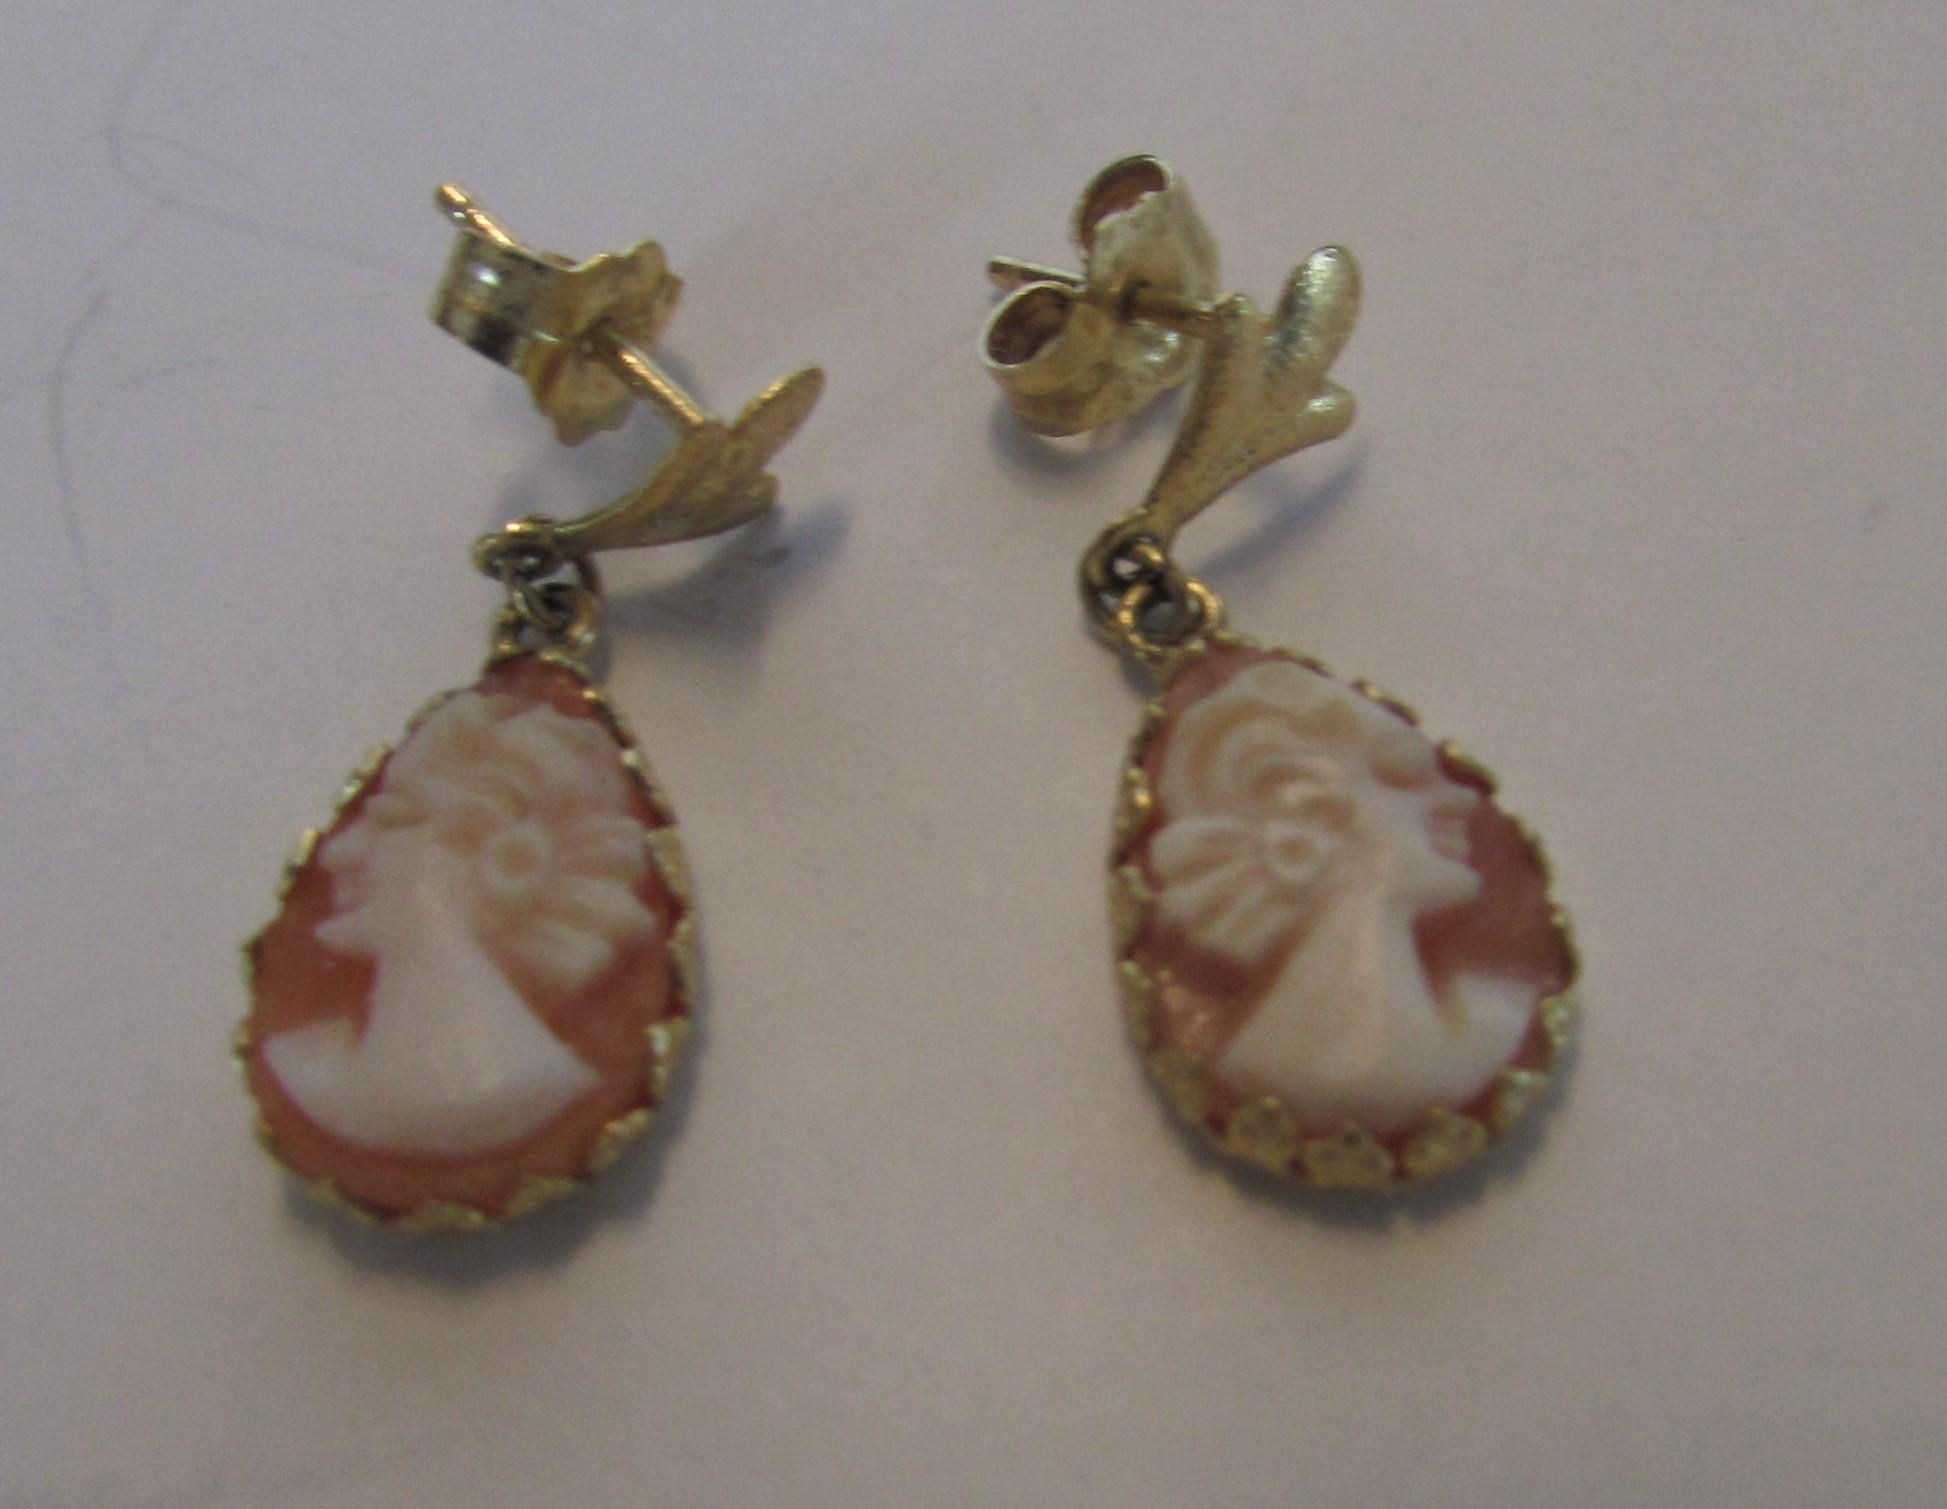 14 Karat Yellow Gold Petite Cameo Earrings